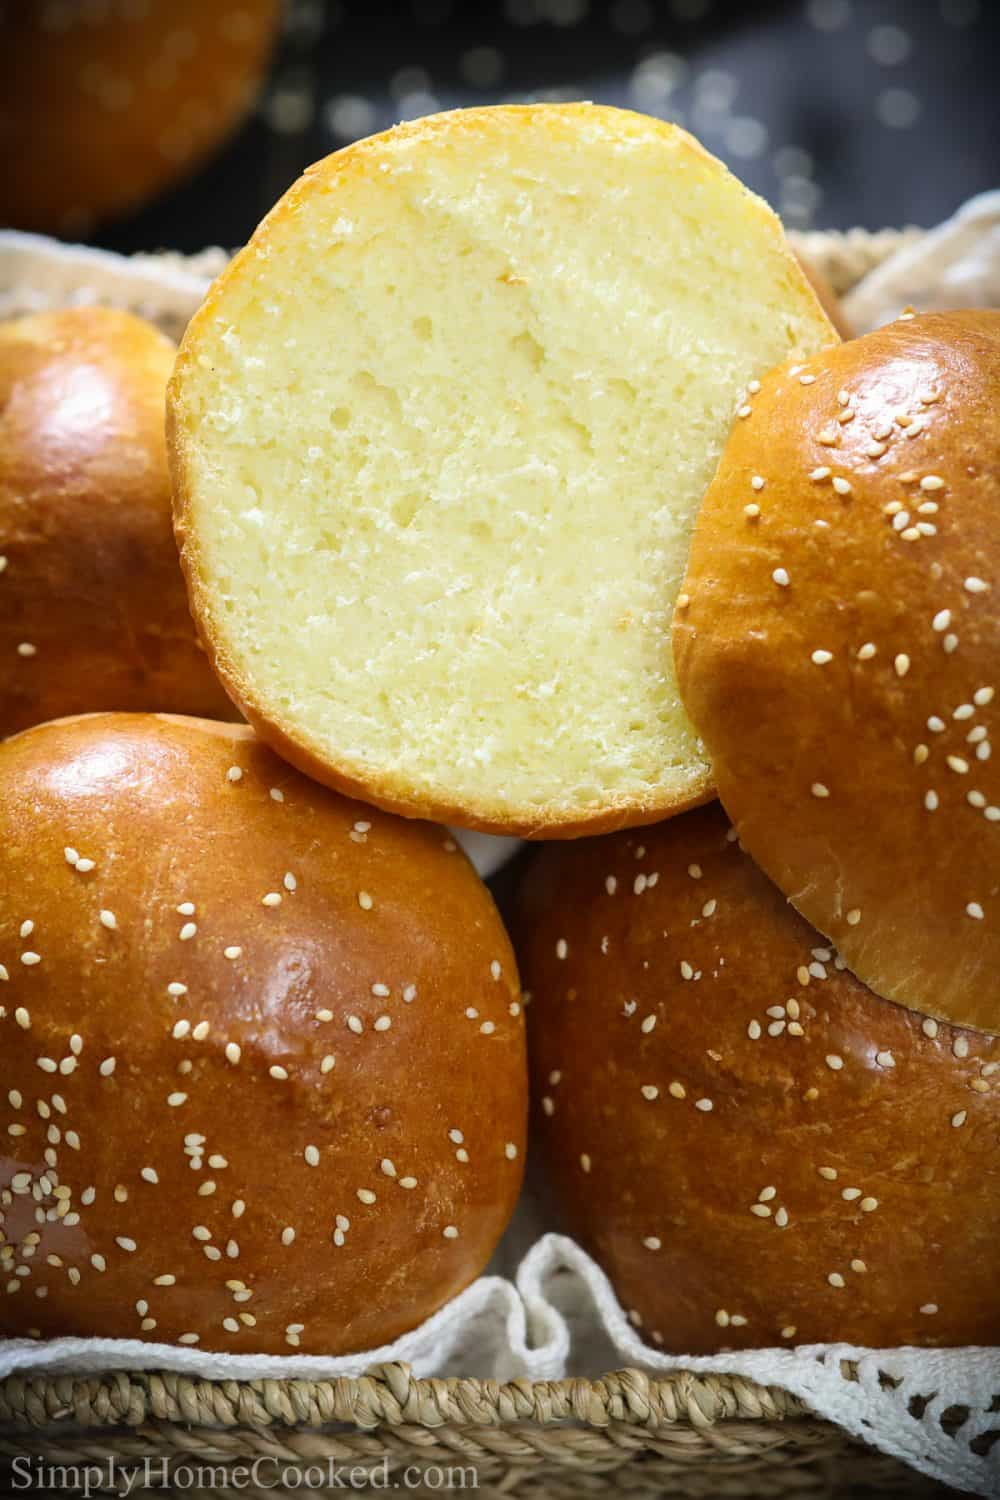 sliced brioche buns with sesame seeds on top